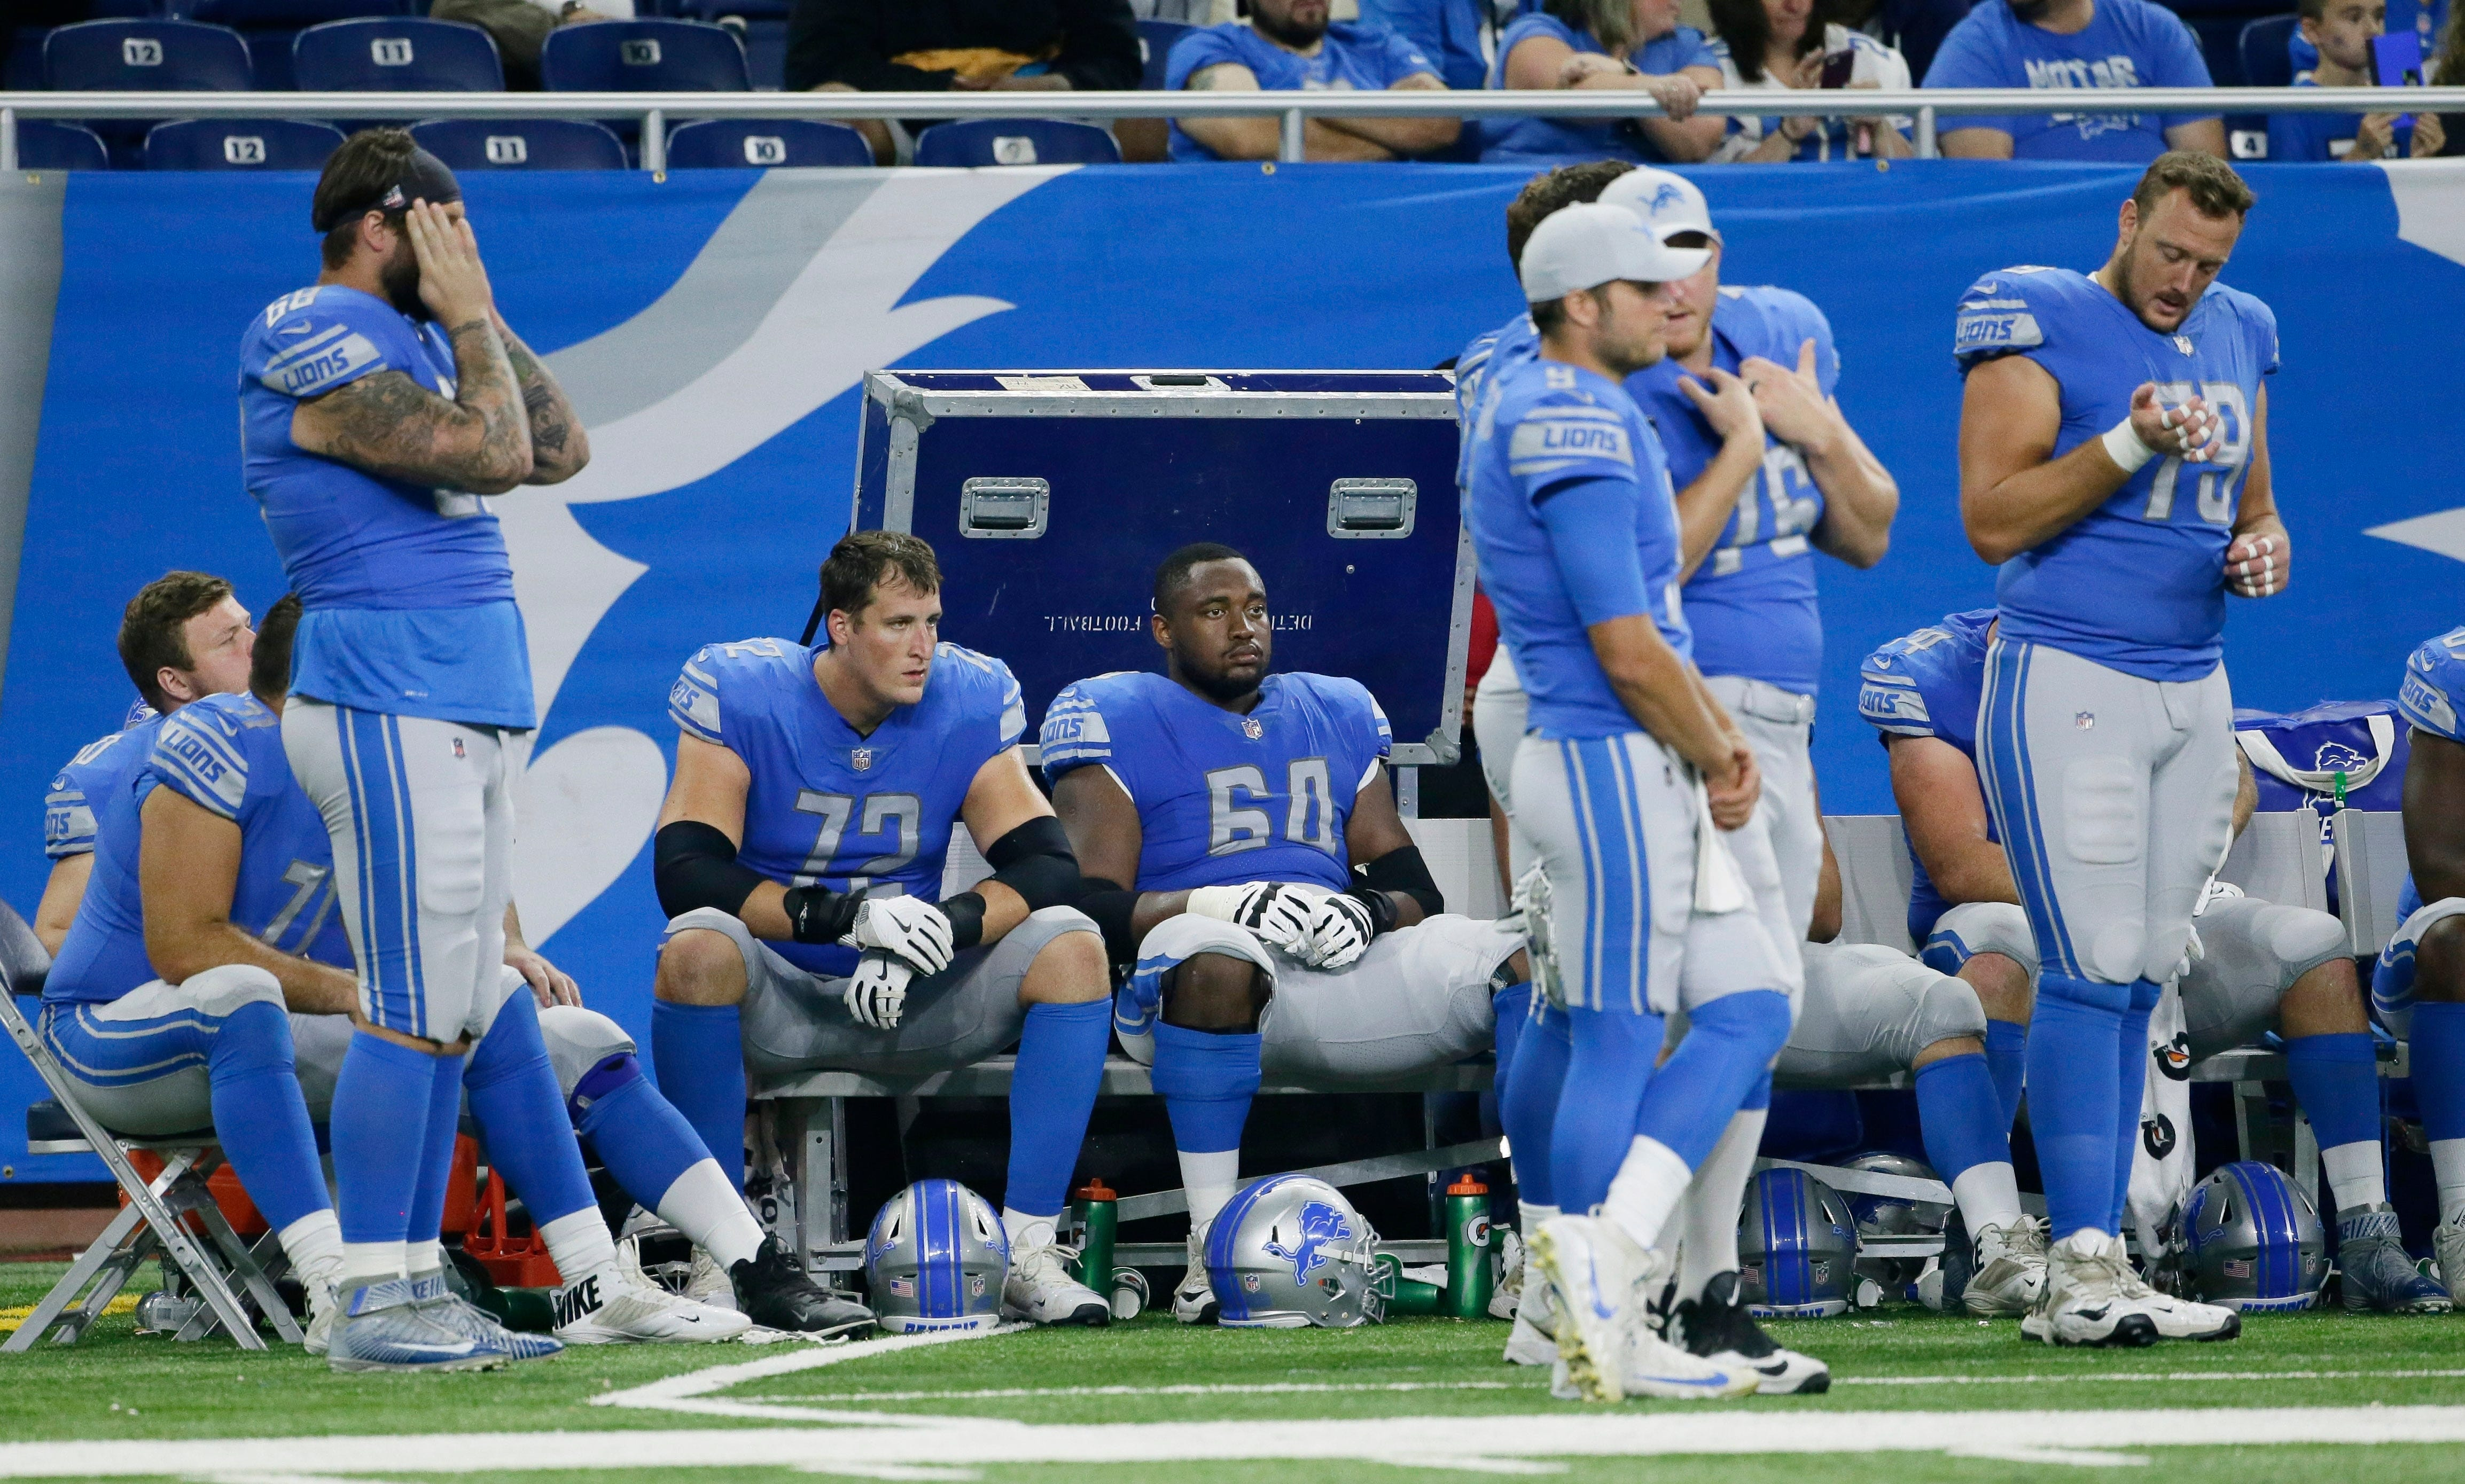 Lions players sit on the bench during the closing minute of the Lions' 35-17 preseason loss Thursday at Ford Field.